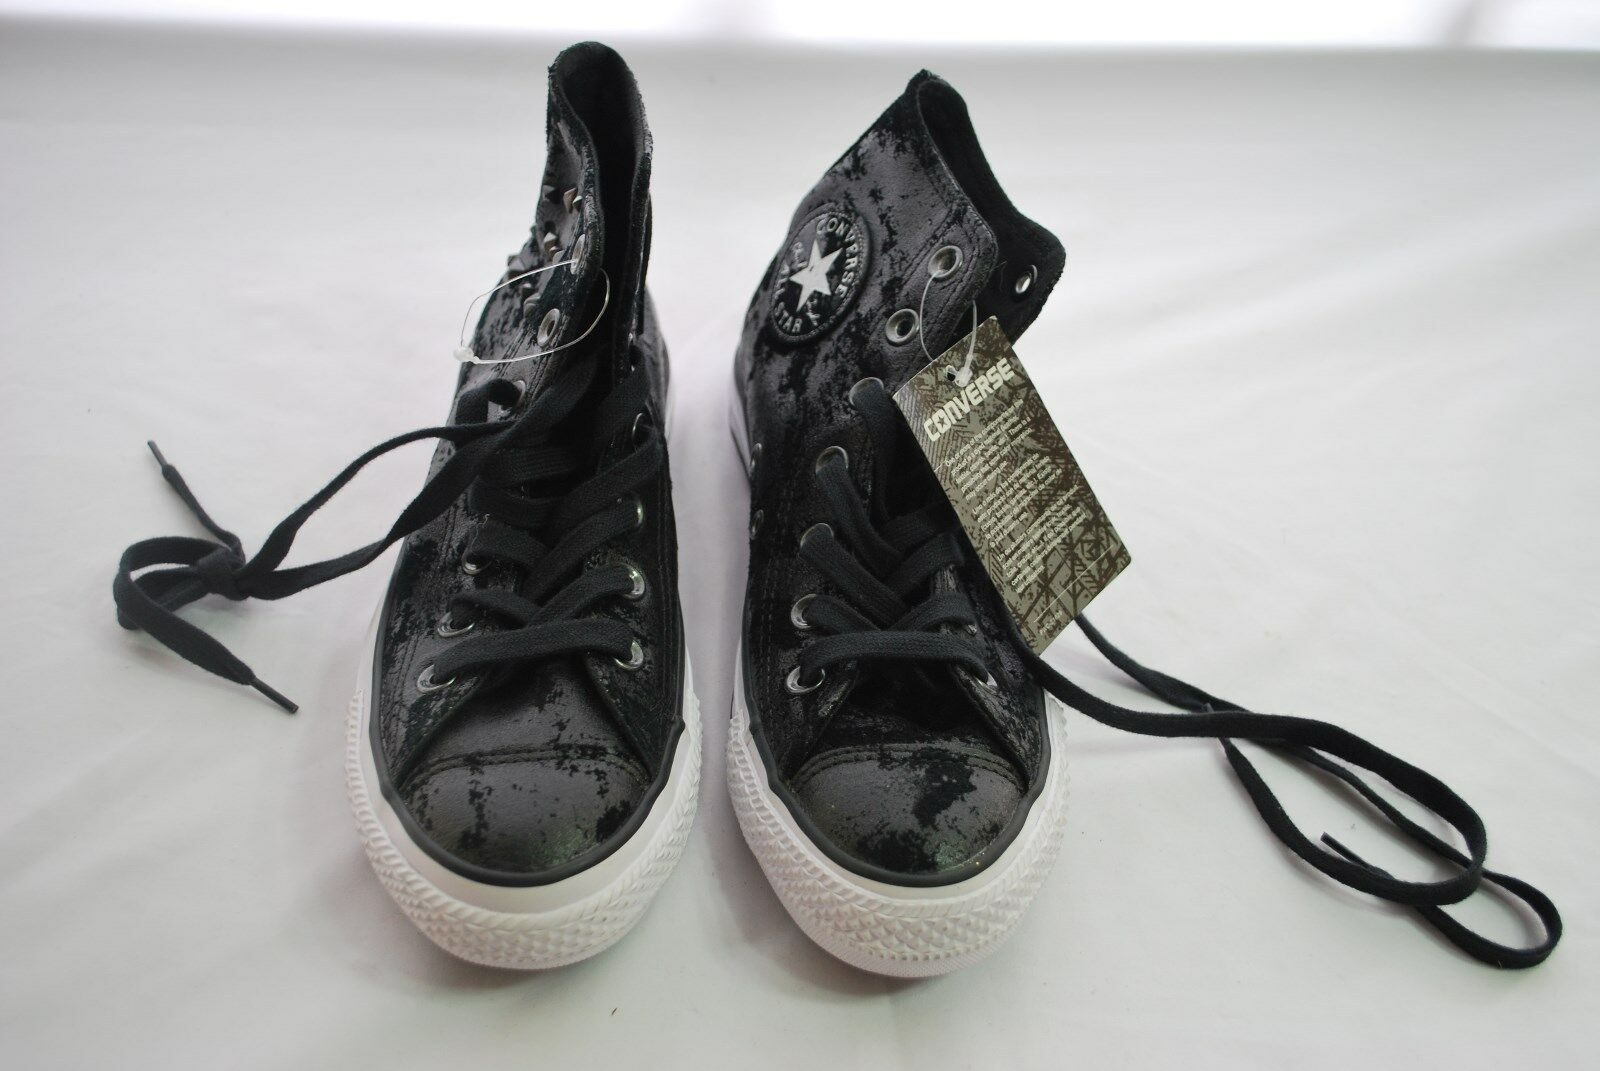 Converse Chuck Taylor All Star Black Distressed Sneakers Women's Sz 6.5 NWT